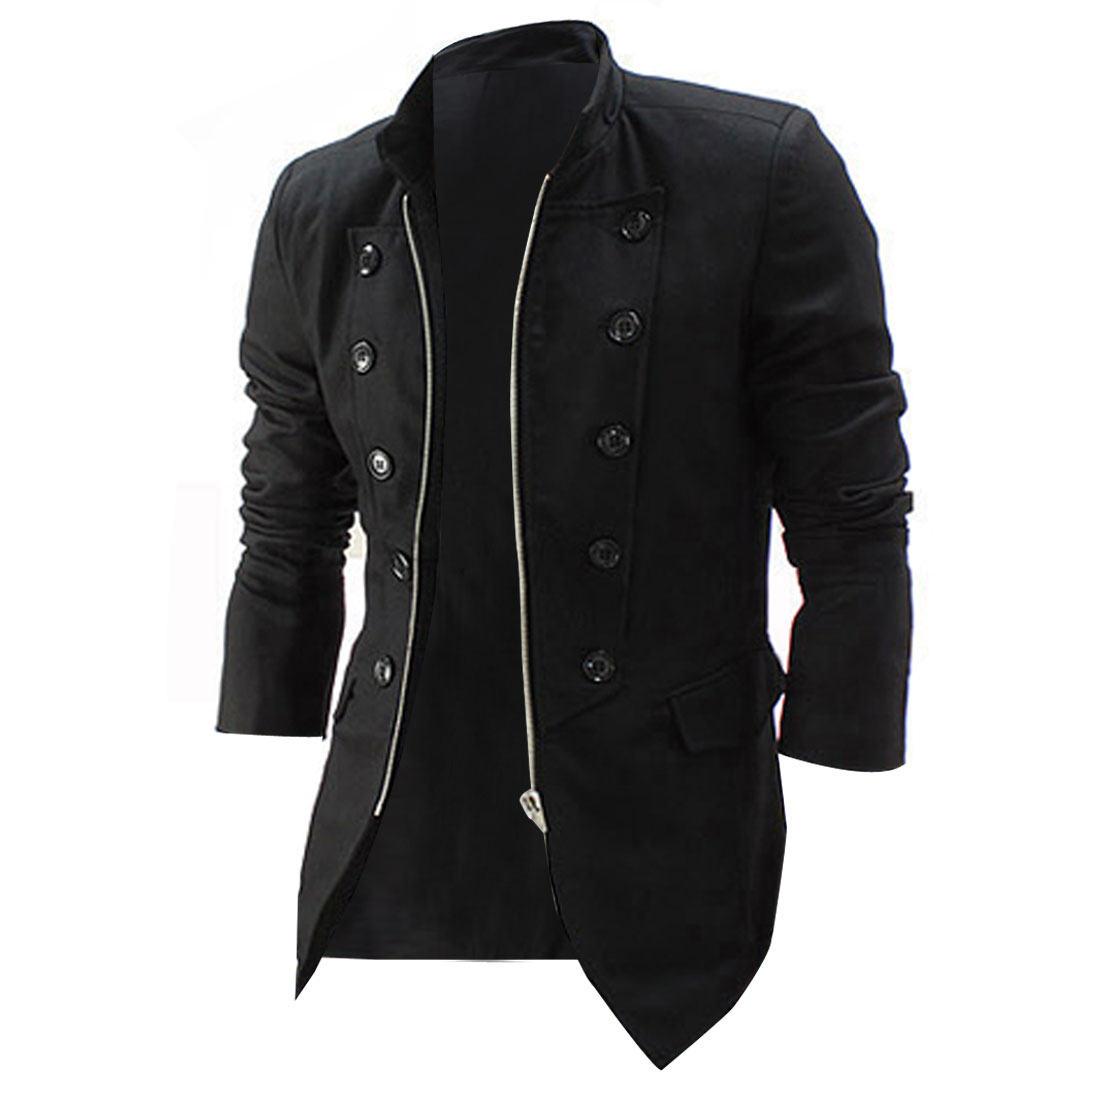 Men Pure Black Color Double Breasted Front Zip-Up Closure Blazer Jacket M